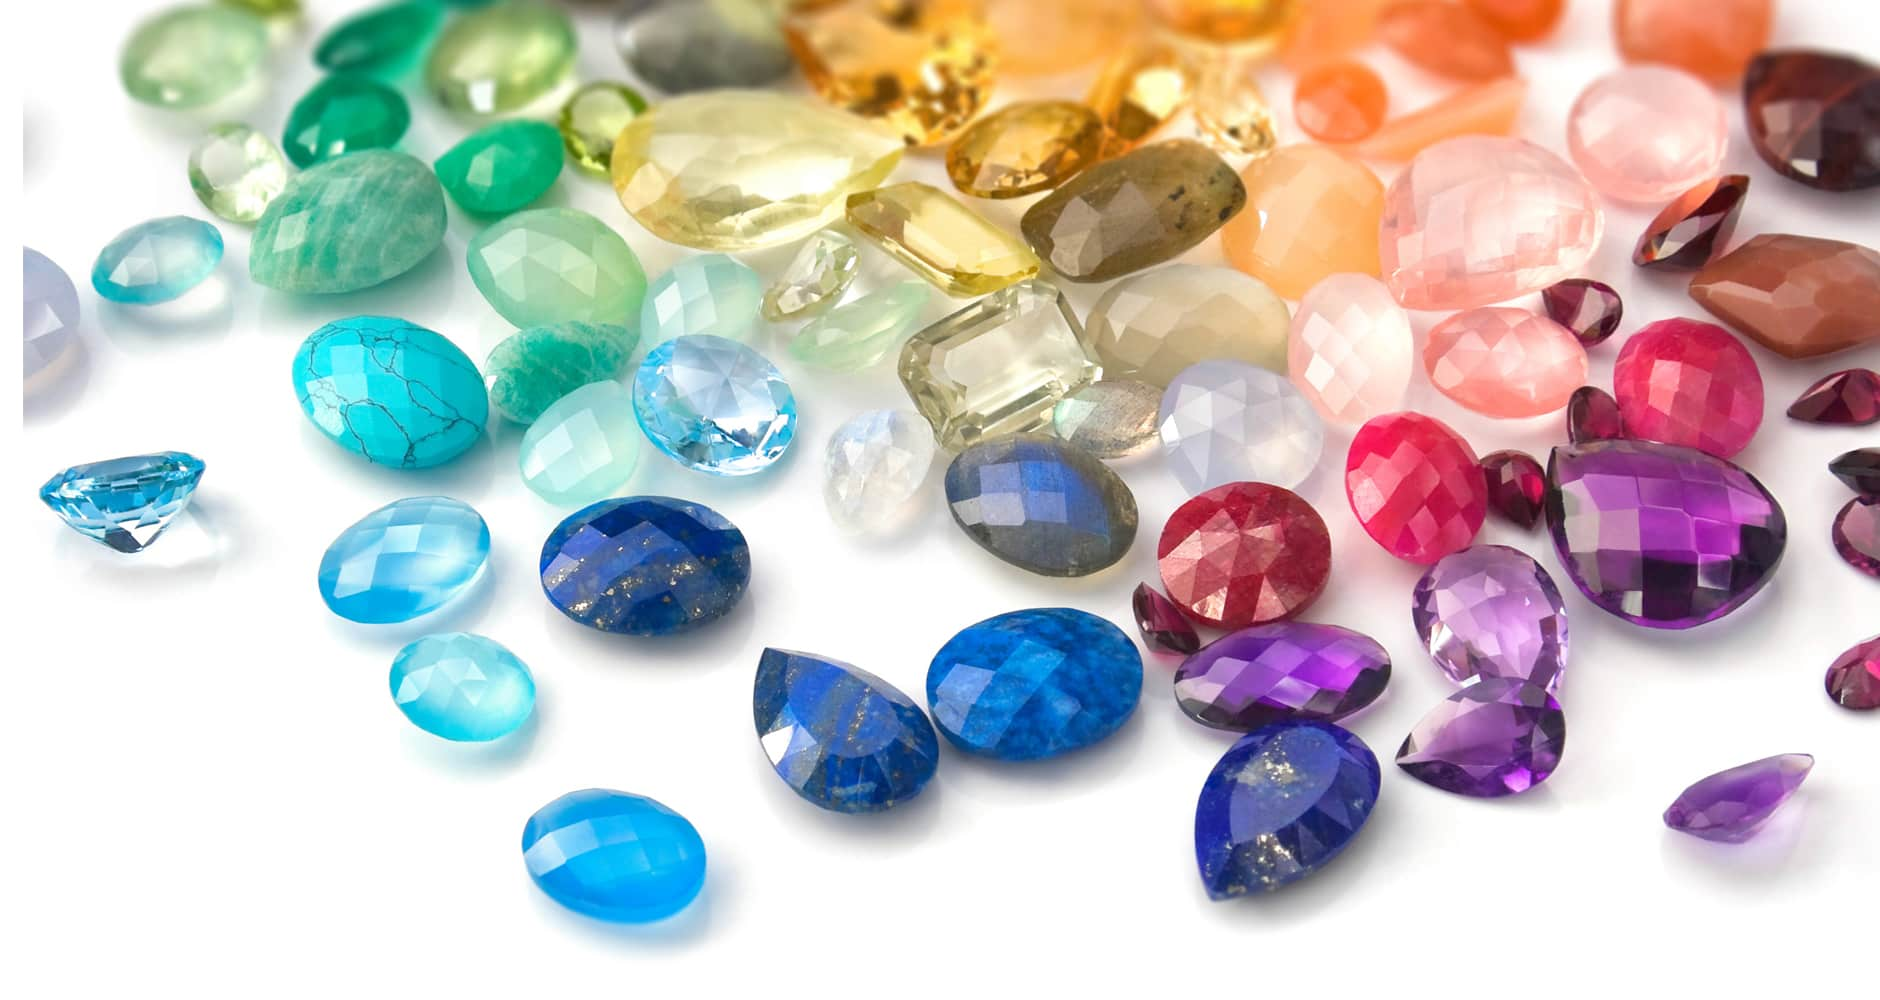 Collection of gemstones on white table